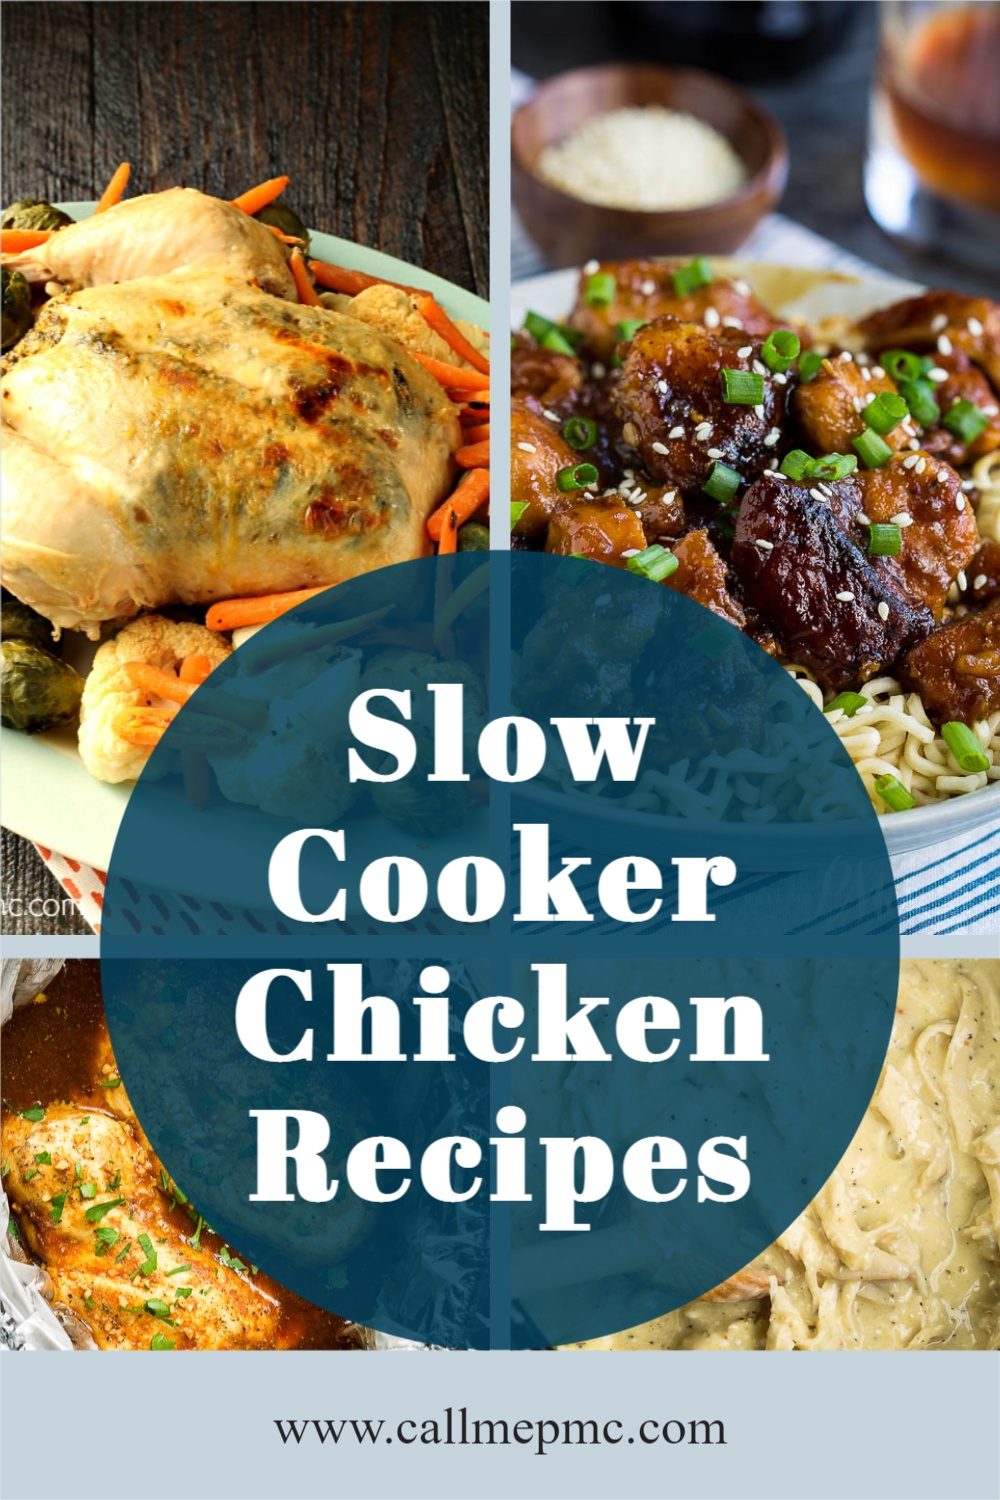 Your slow cooker is the best appliance for getting a healthy and hearty meal on the table during the summer without heating up the house! #slowcooker #roundup #recipes #callmepmc